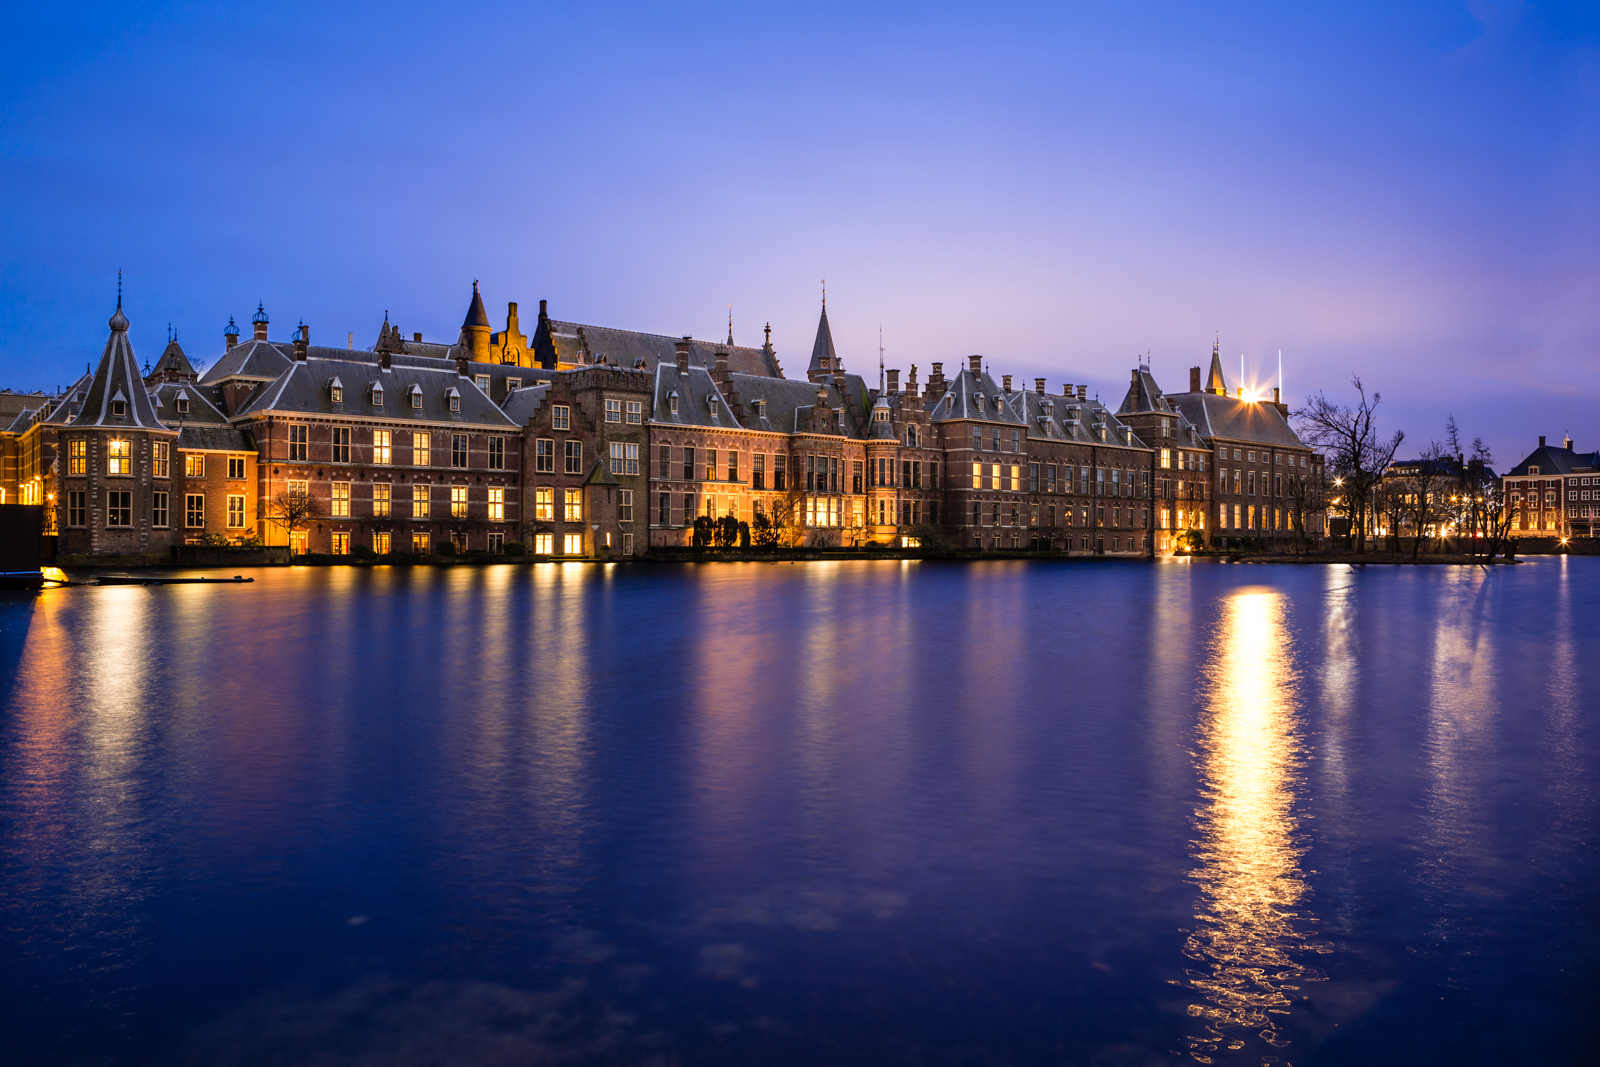 The Binnenhof has been the scene for Dutch political compromise for centuries, but is this a system that would work for every nation? (Image copyright Christopher A. Dominic - Flickr)